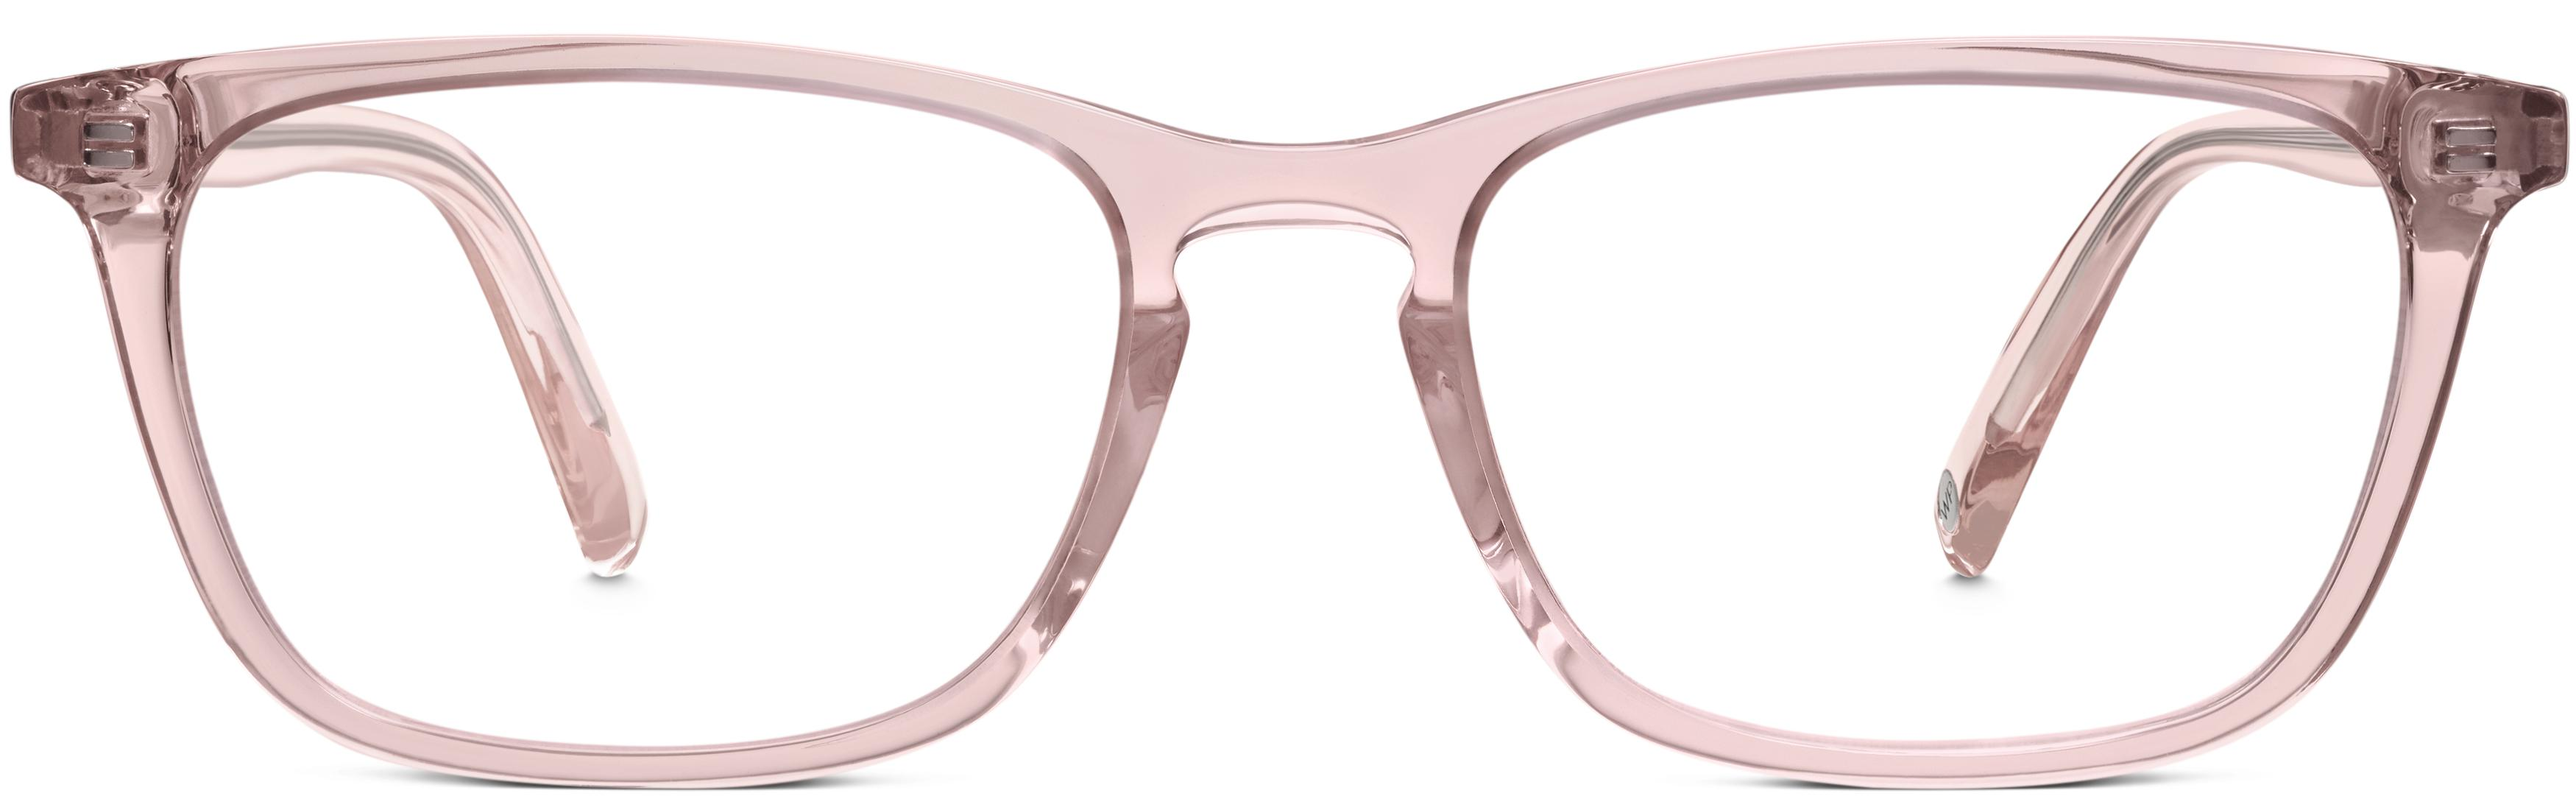 5c91eaad4357 Women s Eyeglasses